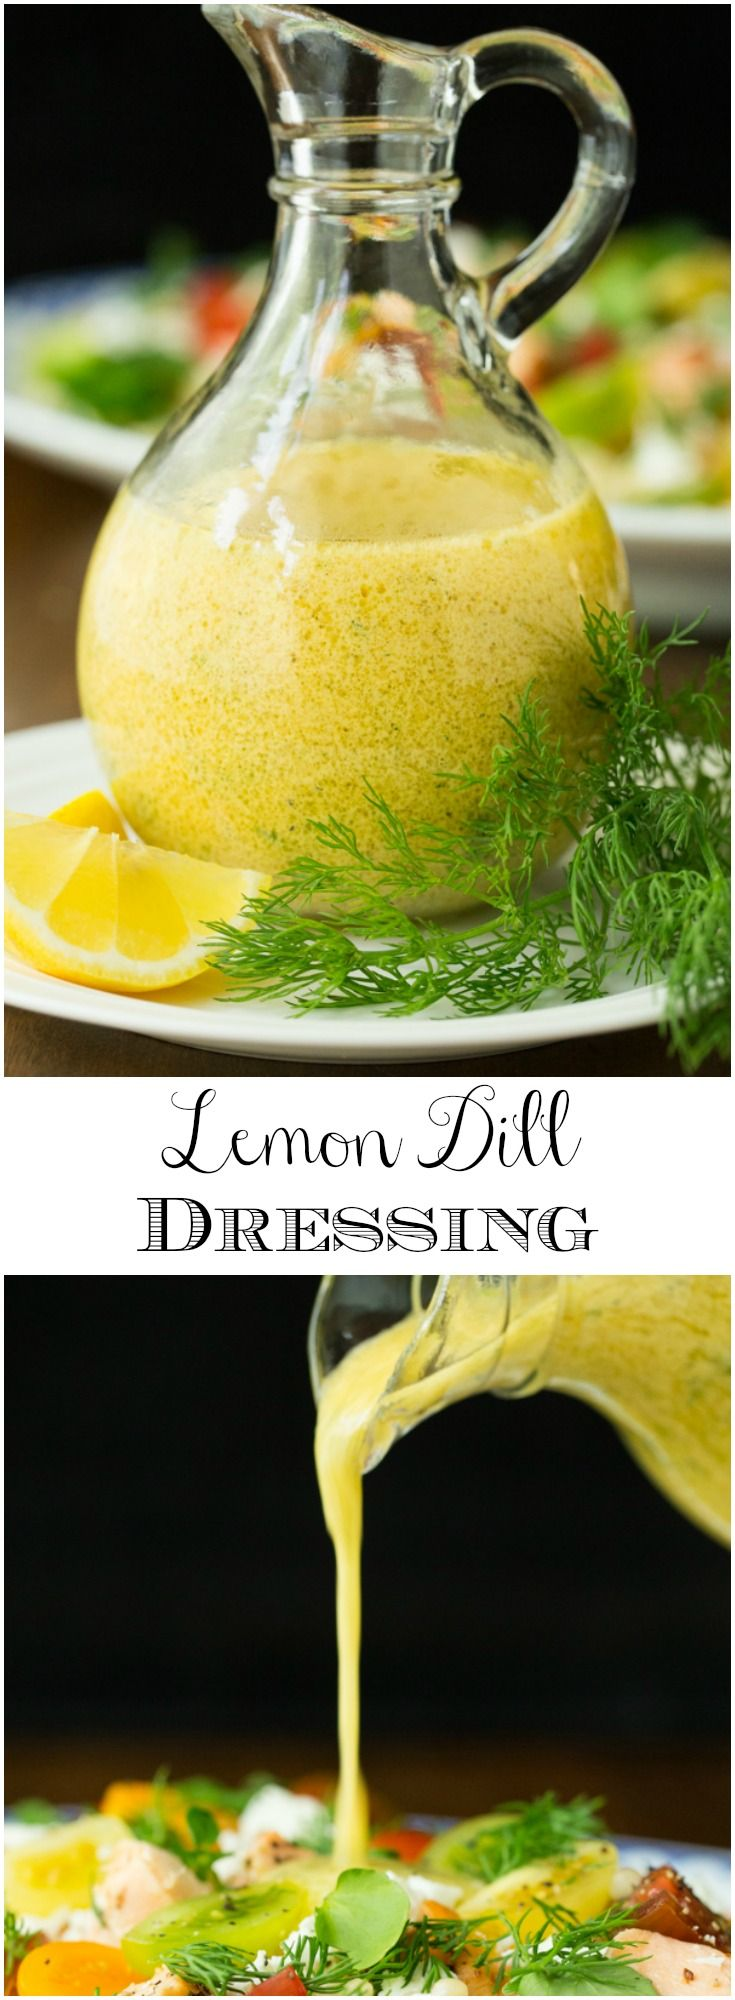 Zitronen-Dill-Dressing   – My Recipe Exchange ~ Let's Share!